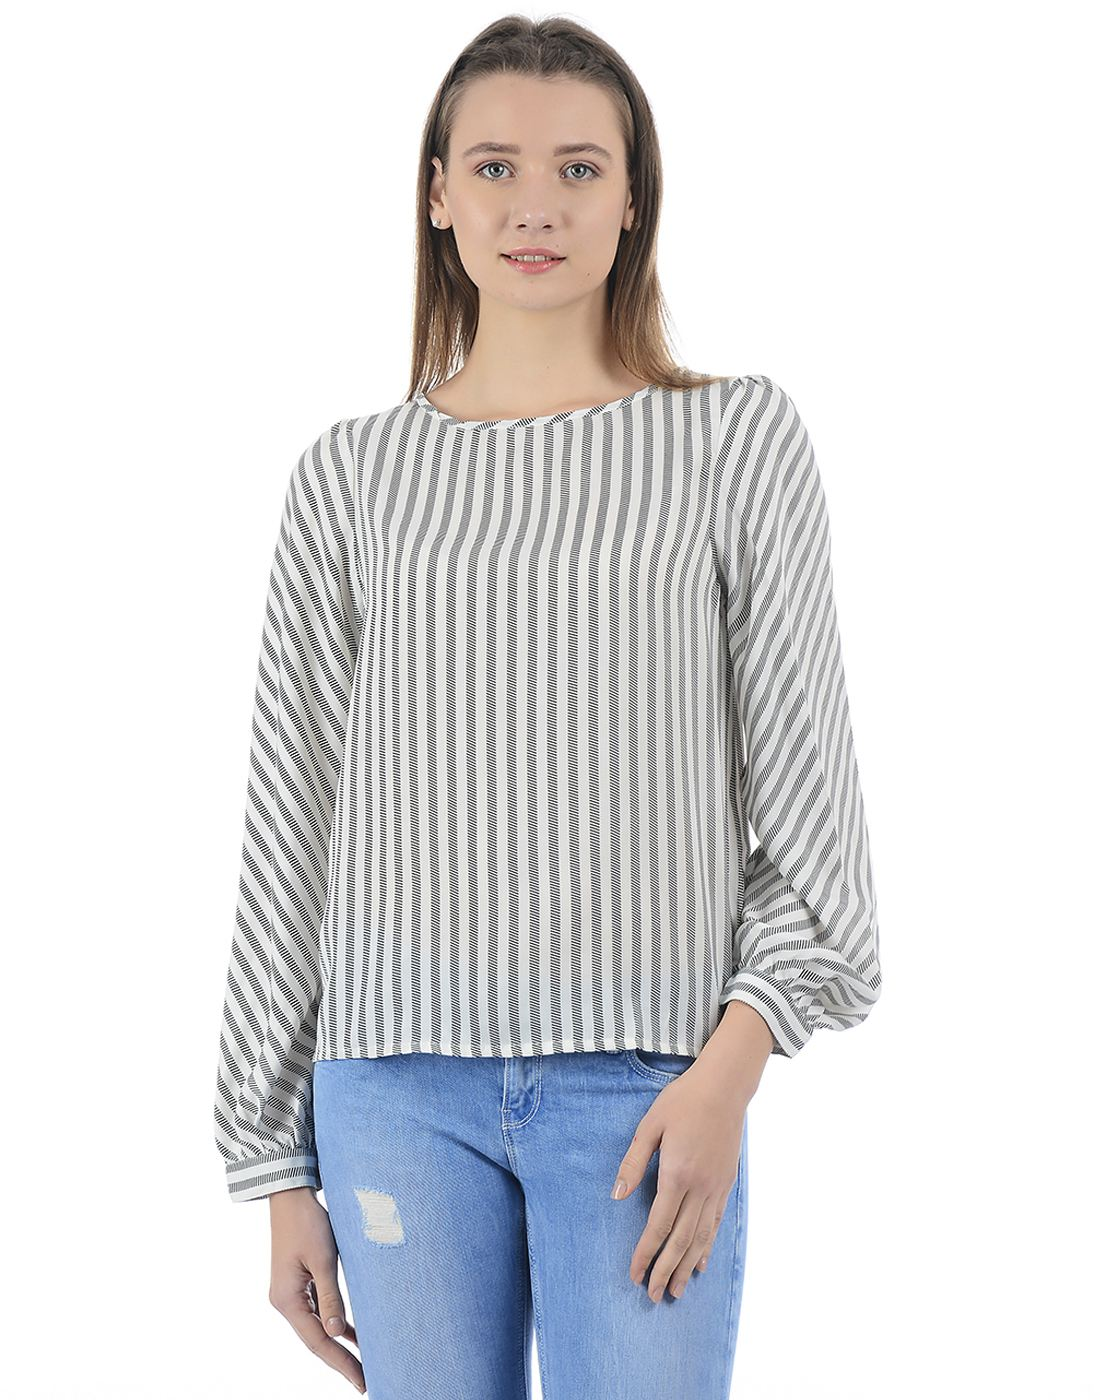 Vero Moda Women White Top